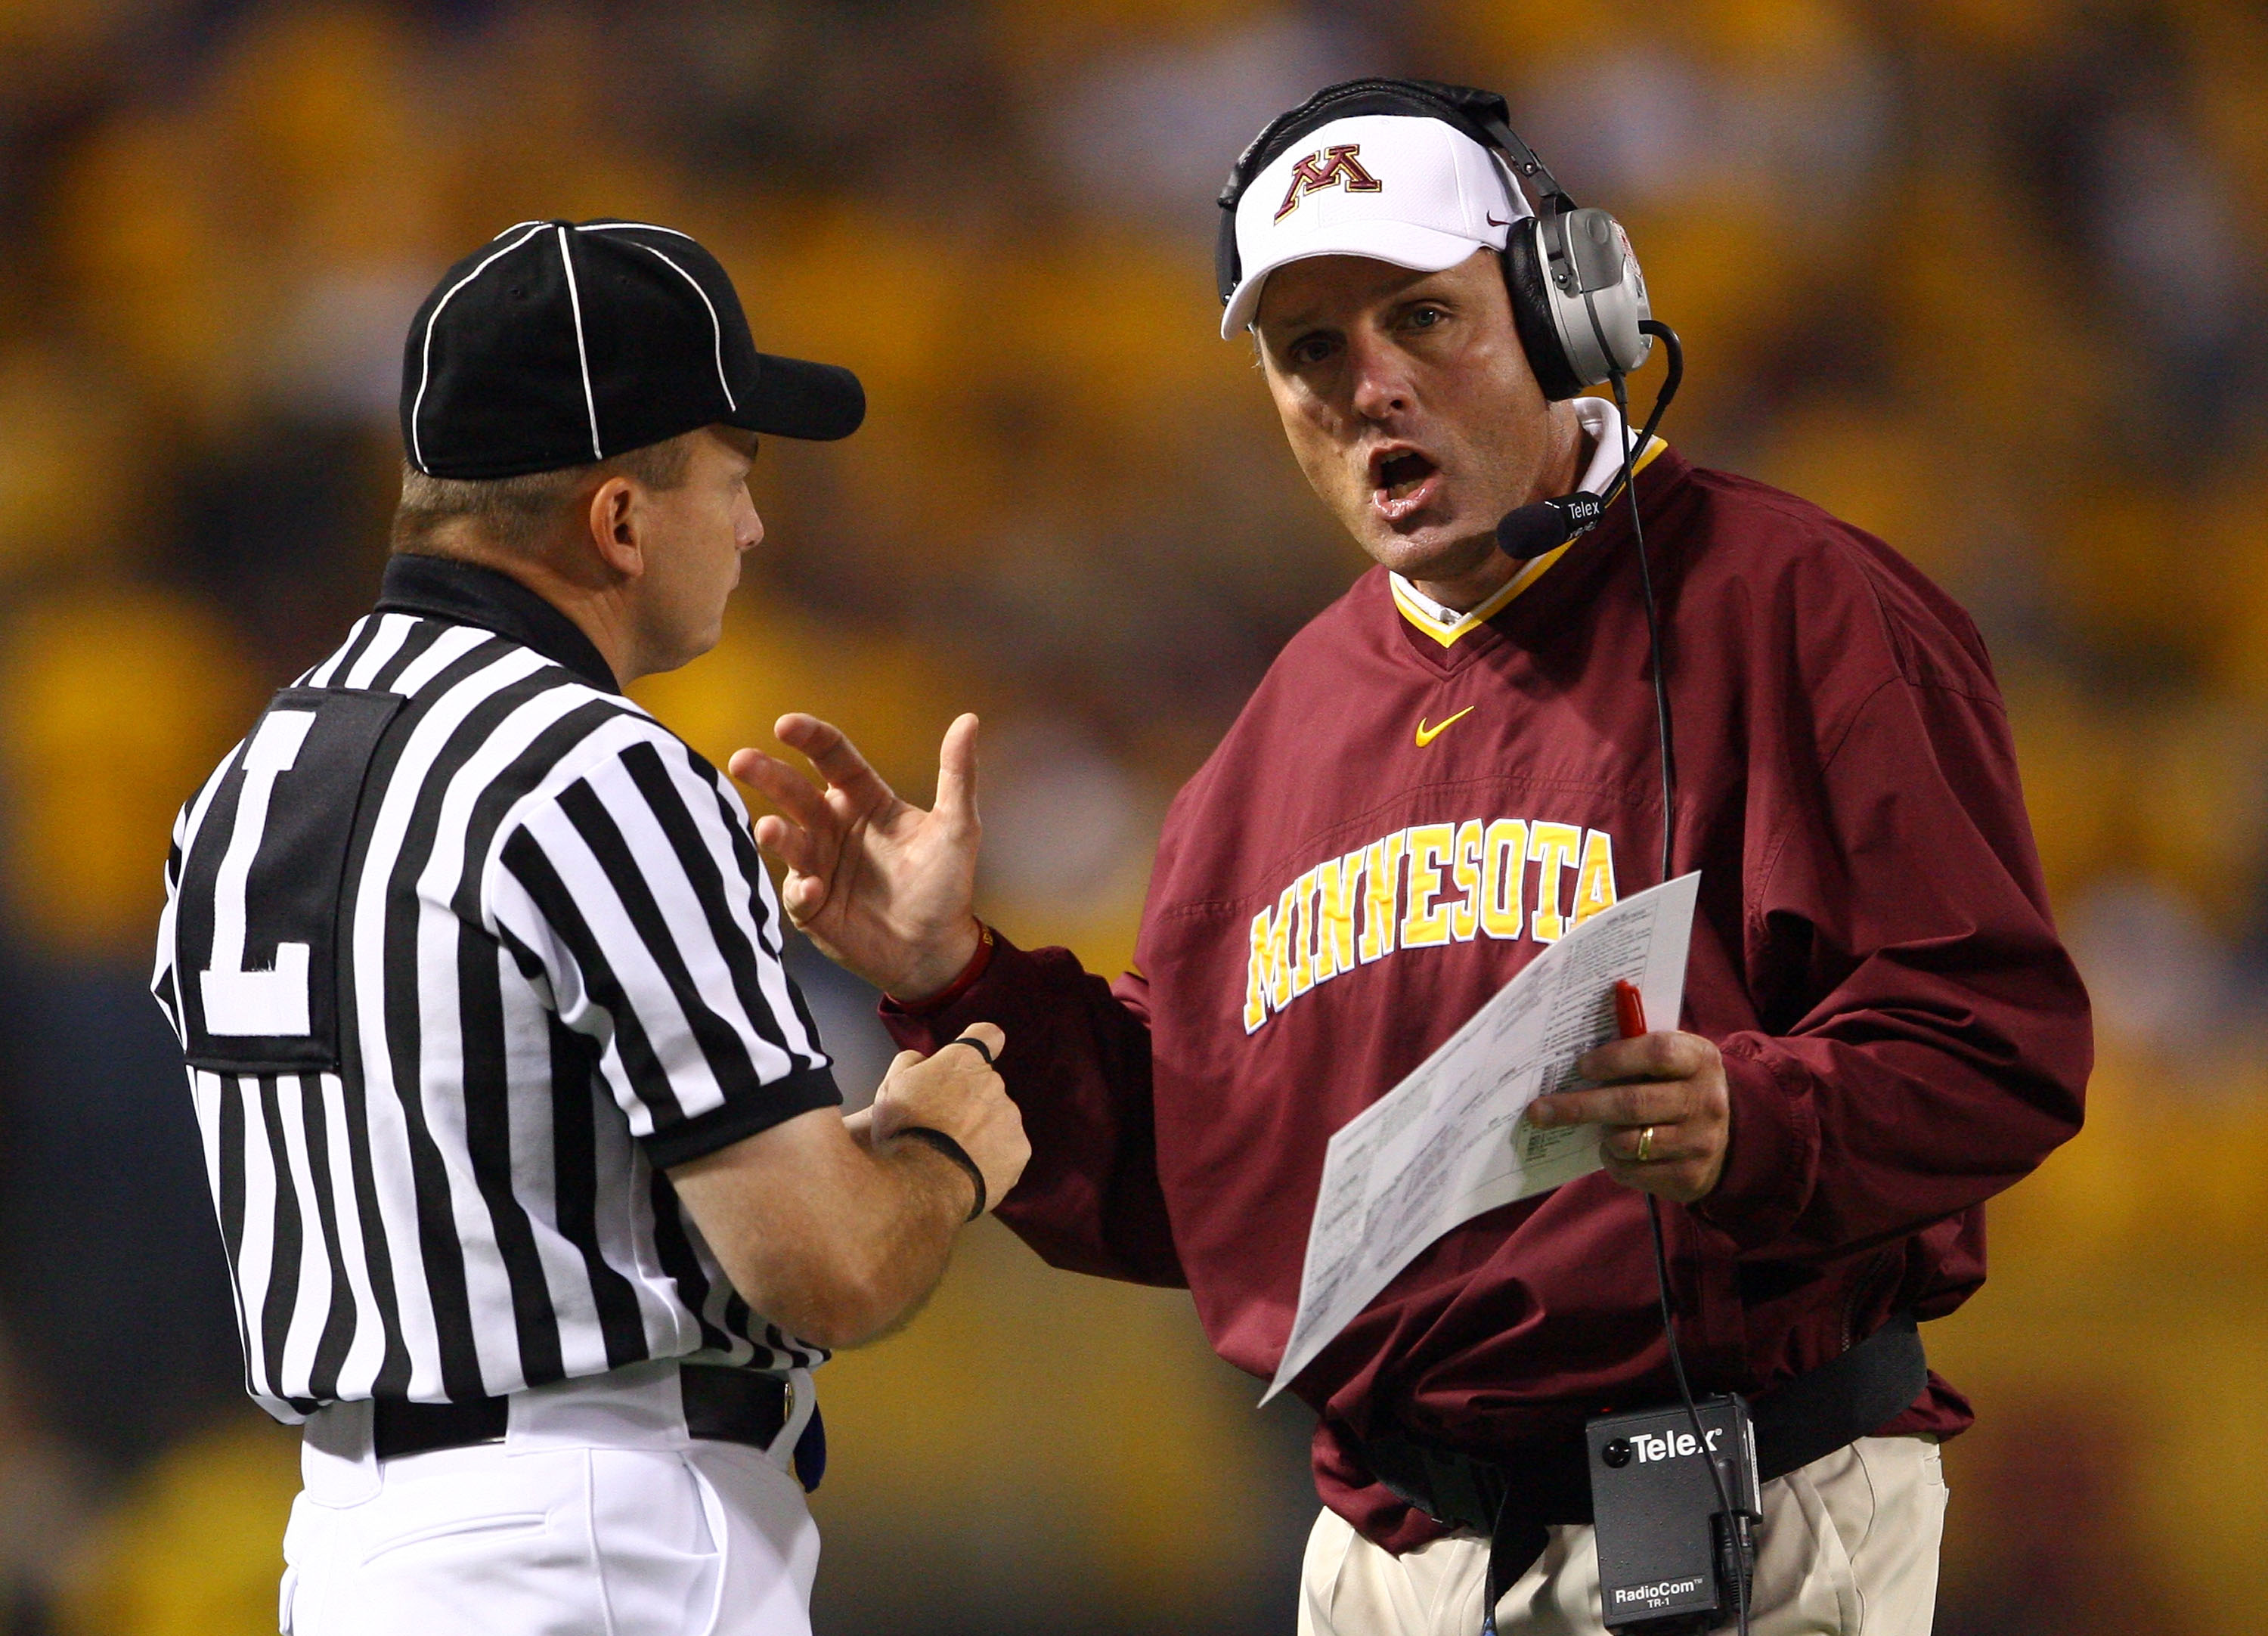 MINNEAPOLIS - SEPTEMBER 13:  Minnesota Golden Gophers' head coach Tim Brewster talks with an official during the game against the Montana State Bobcats at the Metrodome on September 13, 2008 in Minneapolis, Minnesota. Minnesota defeated Montana State 35-2